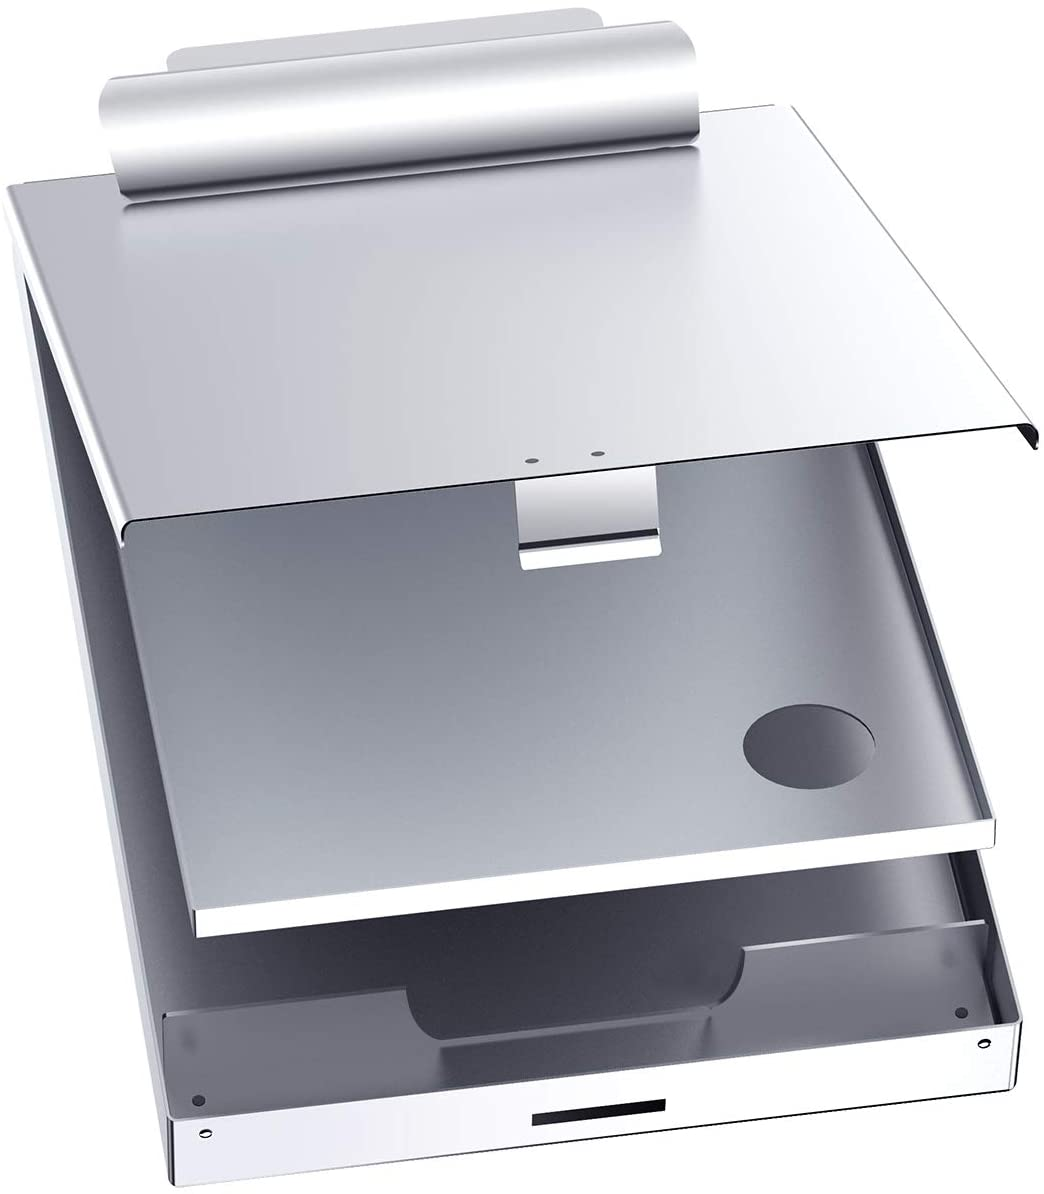 Metal Clipboard with Storage Box, Letter Size Aluminum Clipboards, Metal Binder Form holder with High Capacity Clip, Top Hinge Opening for Heavy Duty, Nursing, Patrol, Office Business Professionals